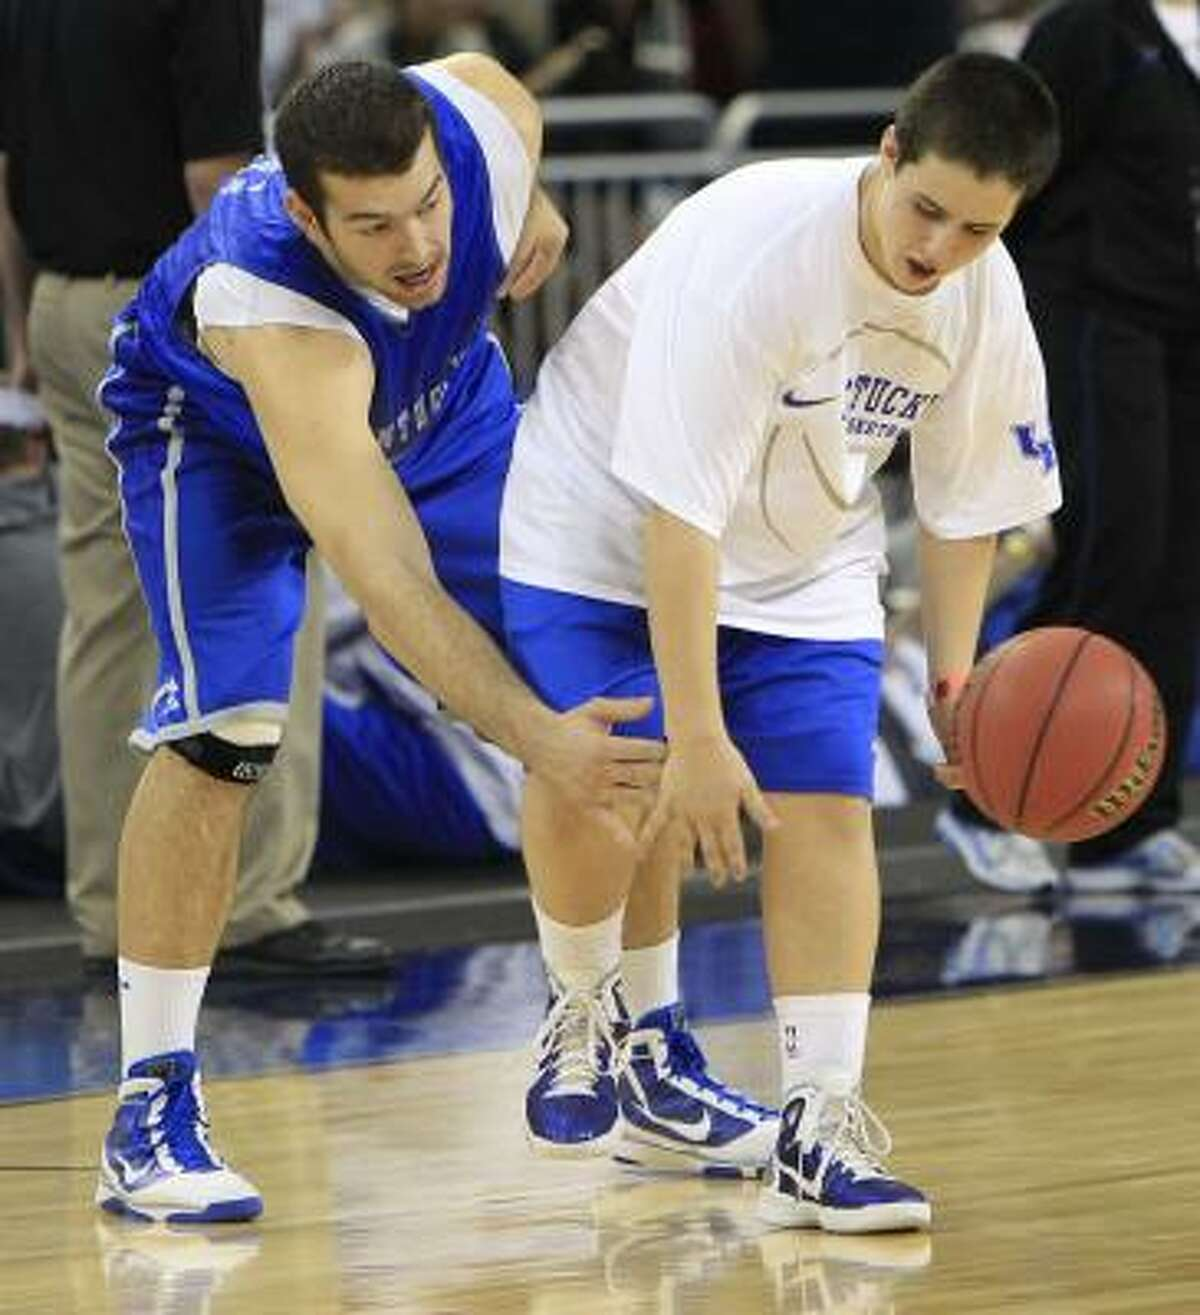 Kentucky forward Josh Harrellson, left, reaches out to steal the ball from Brad Calipari.